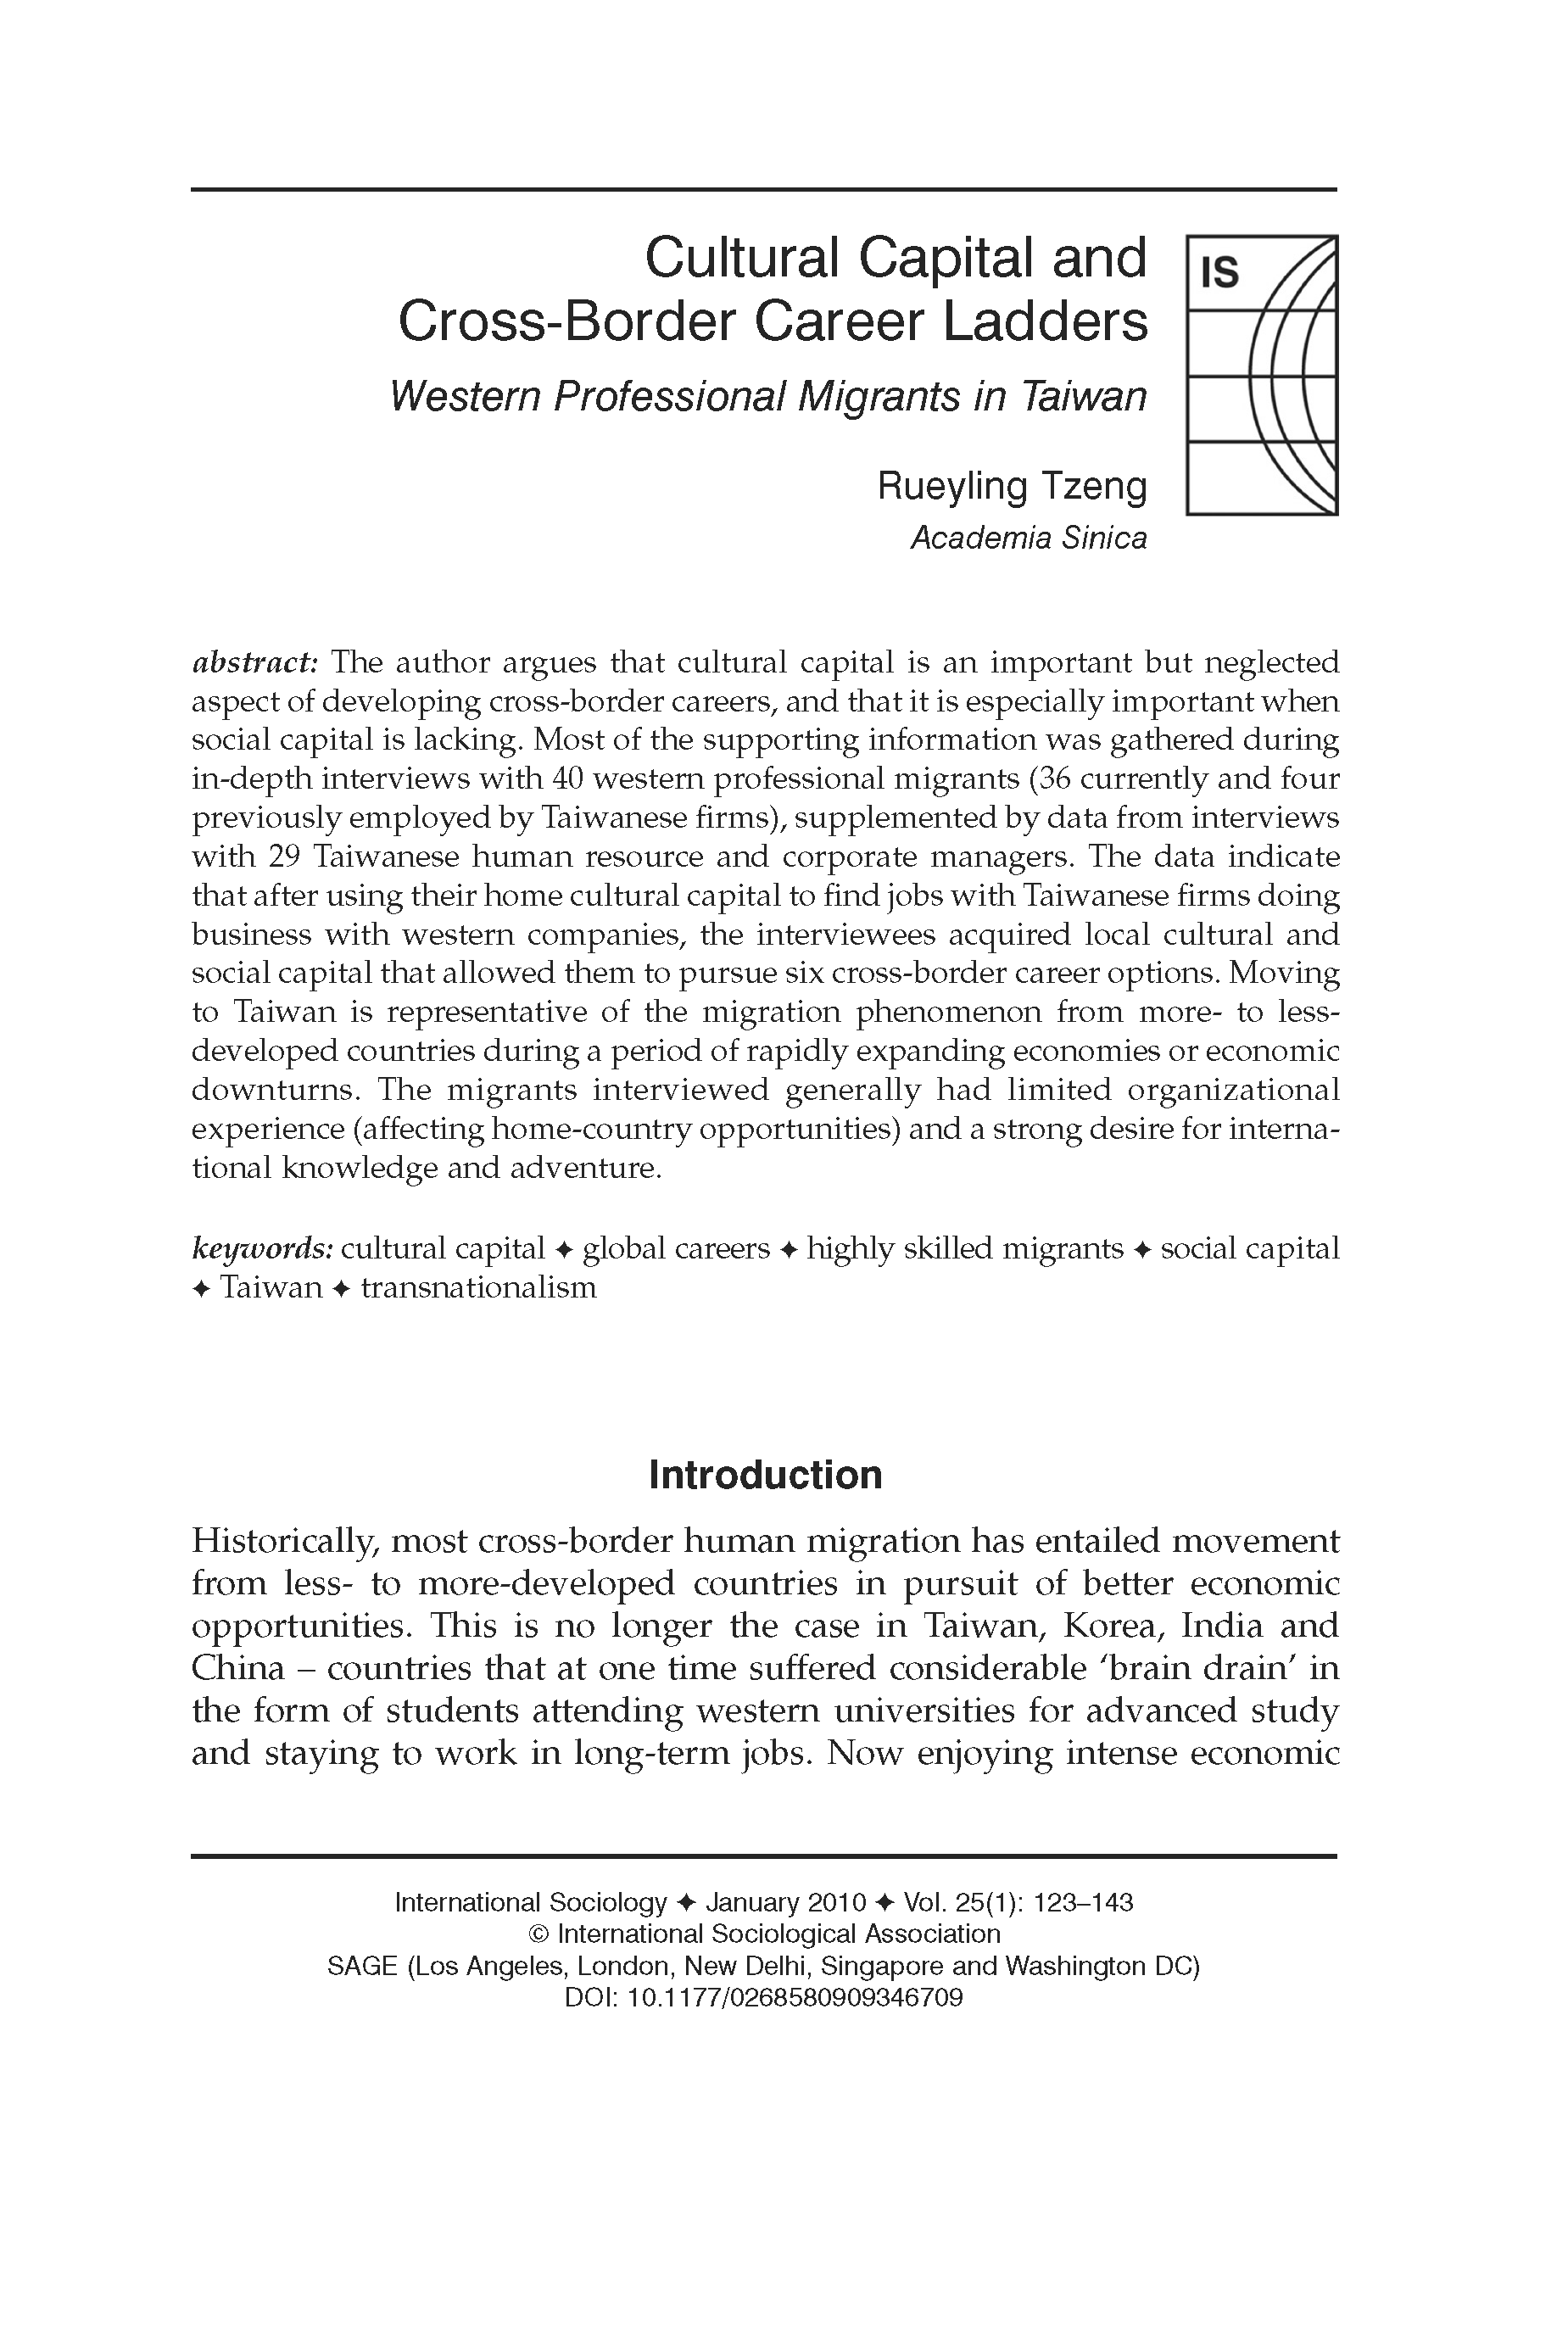 Cultural Capital and Cross-Border Career Ladders: Western Professional Migrants in Taiwan